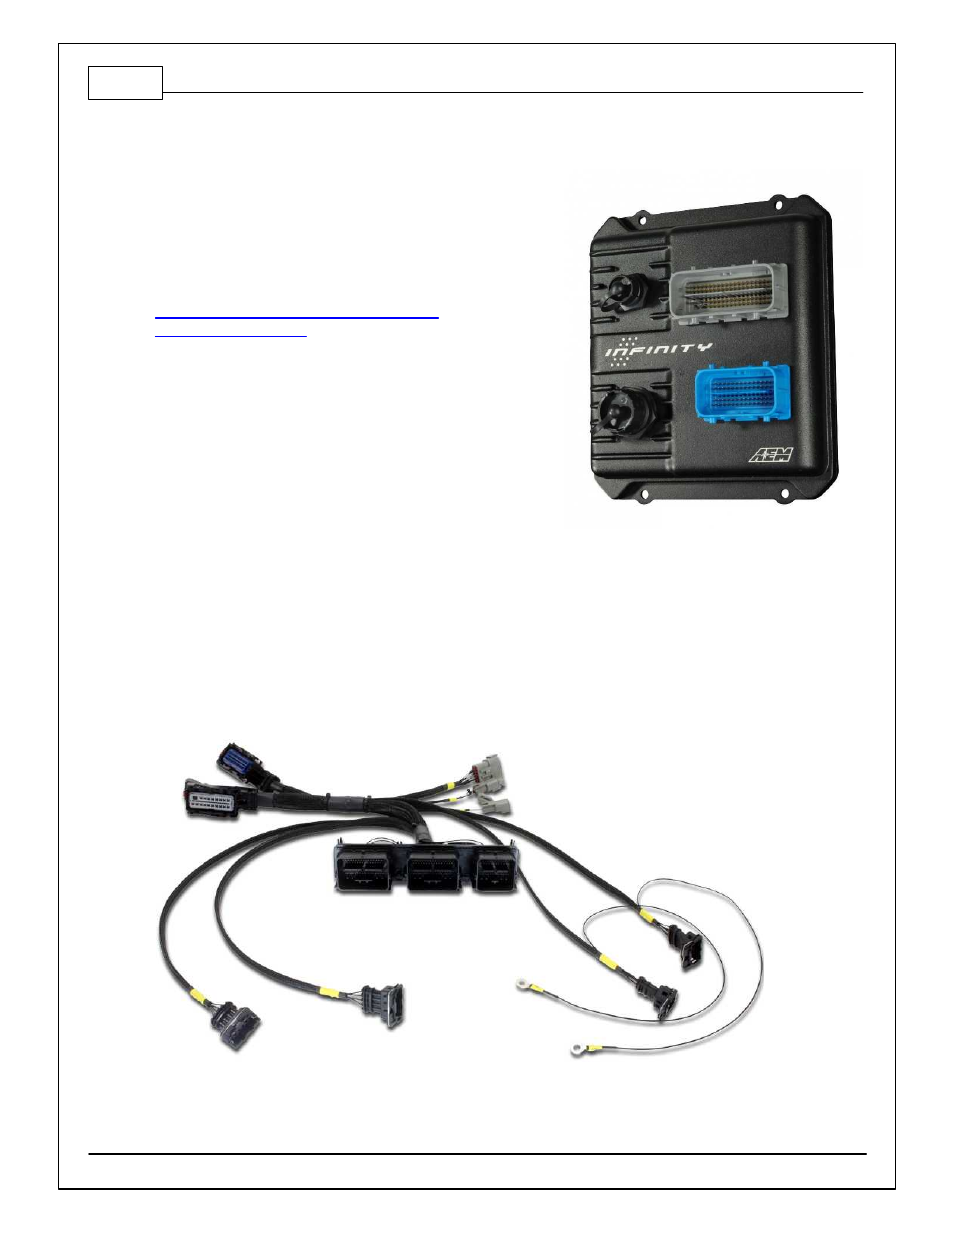 Infinity connectors, Infinity adapter harness | AEM 30-3812 Infinity Plug &  Play Harnesses - Ford Coyote to Ford Racing Controls Pack User Manual |  Page 4 / ...